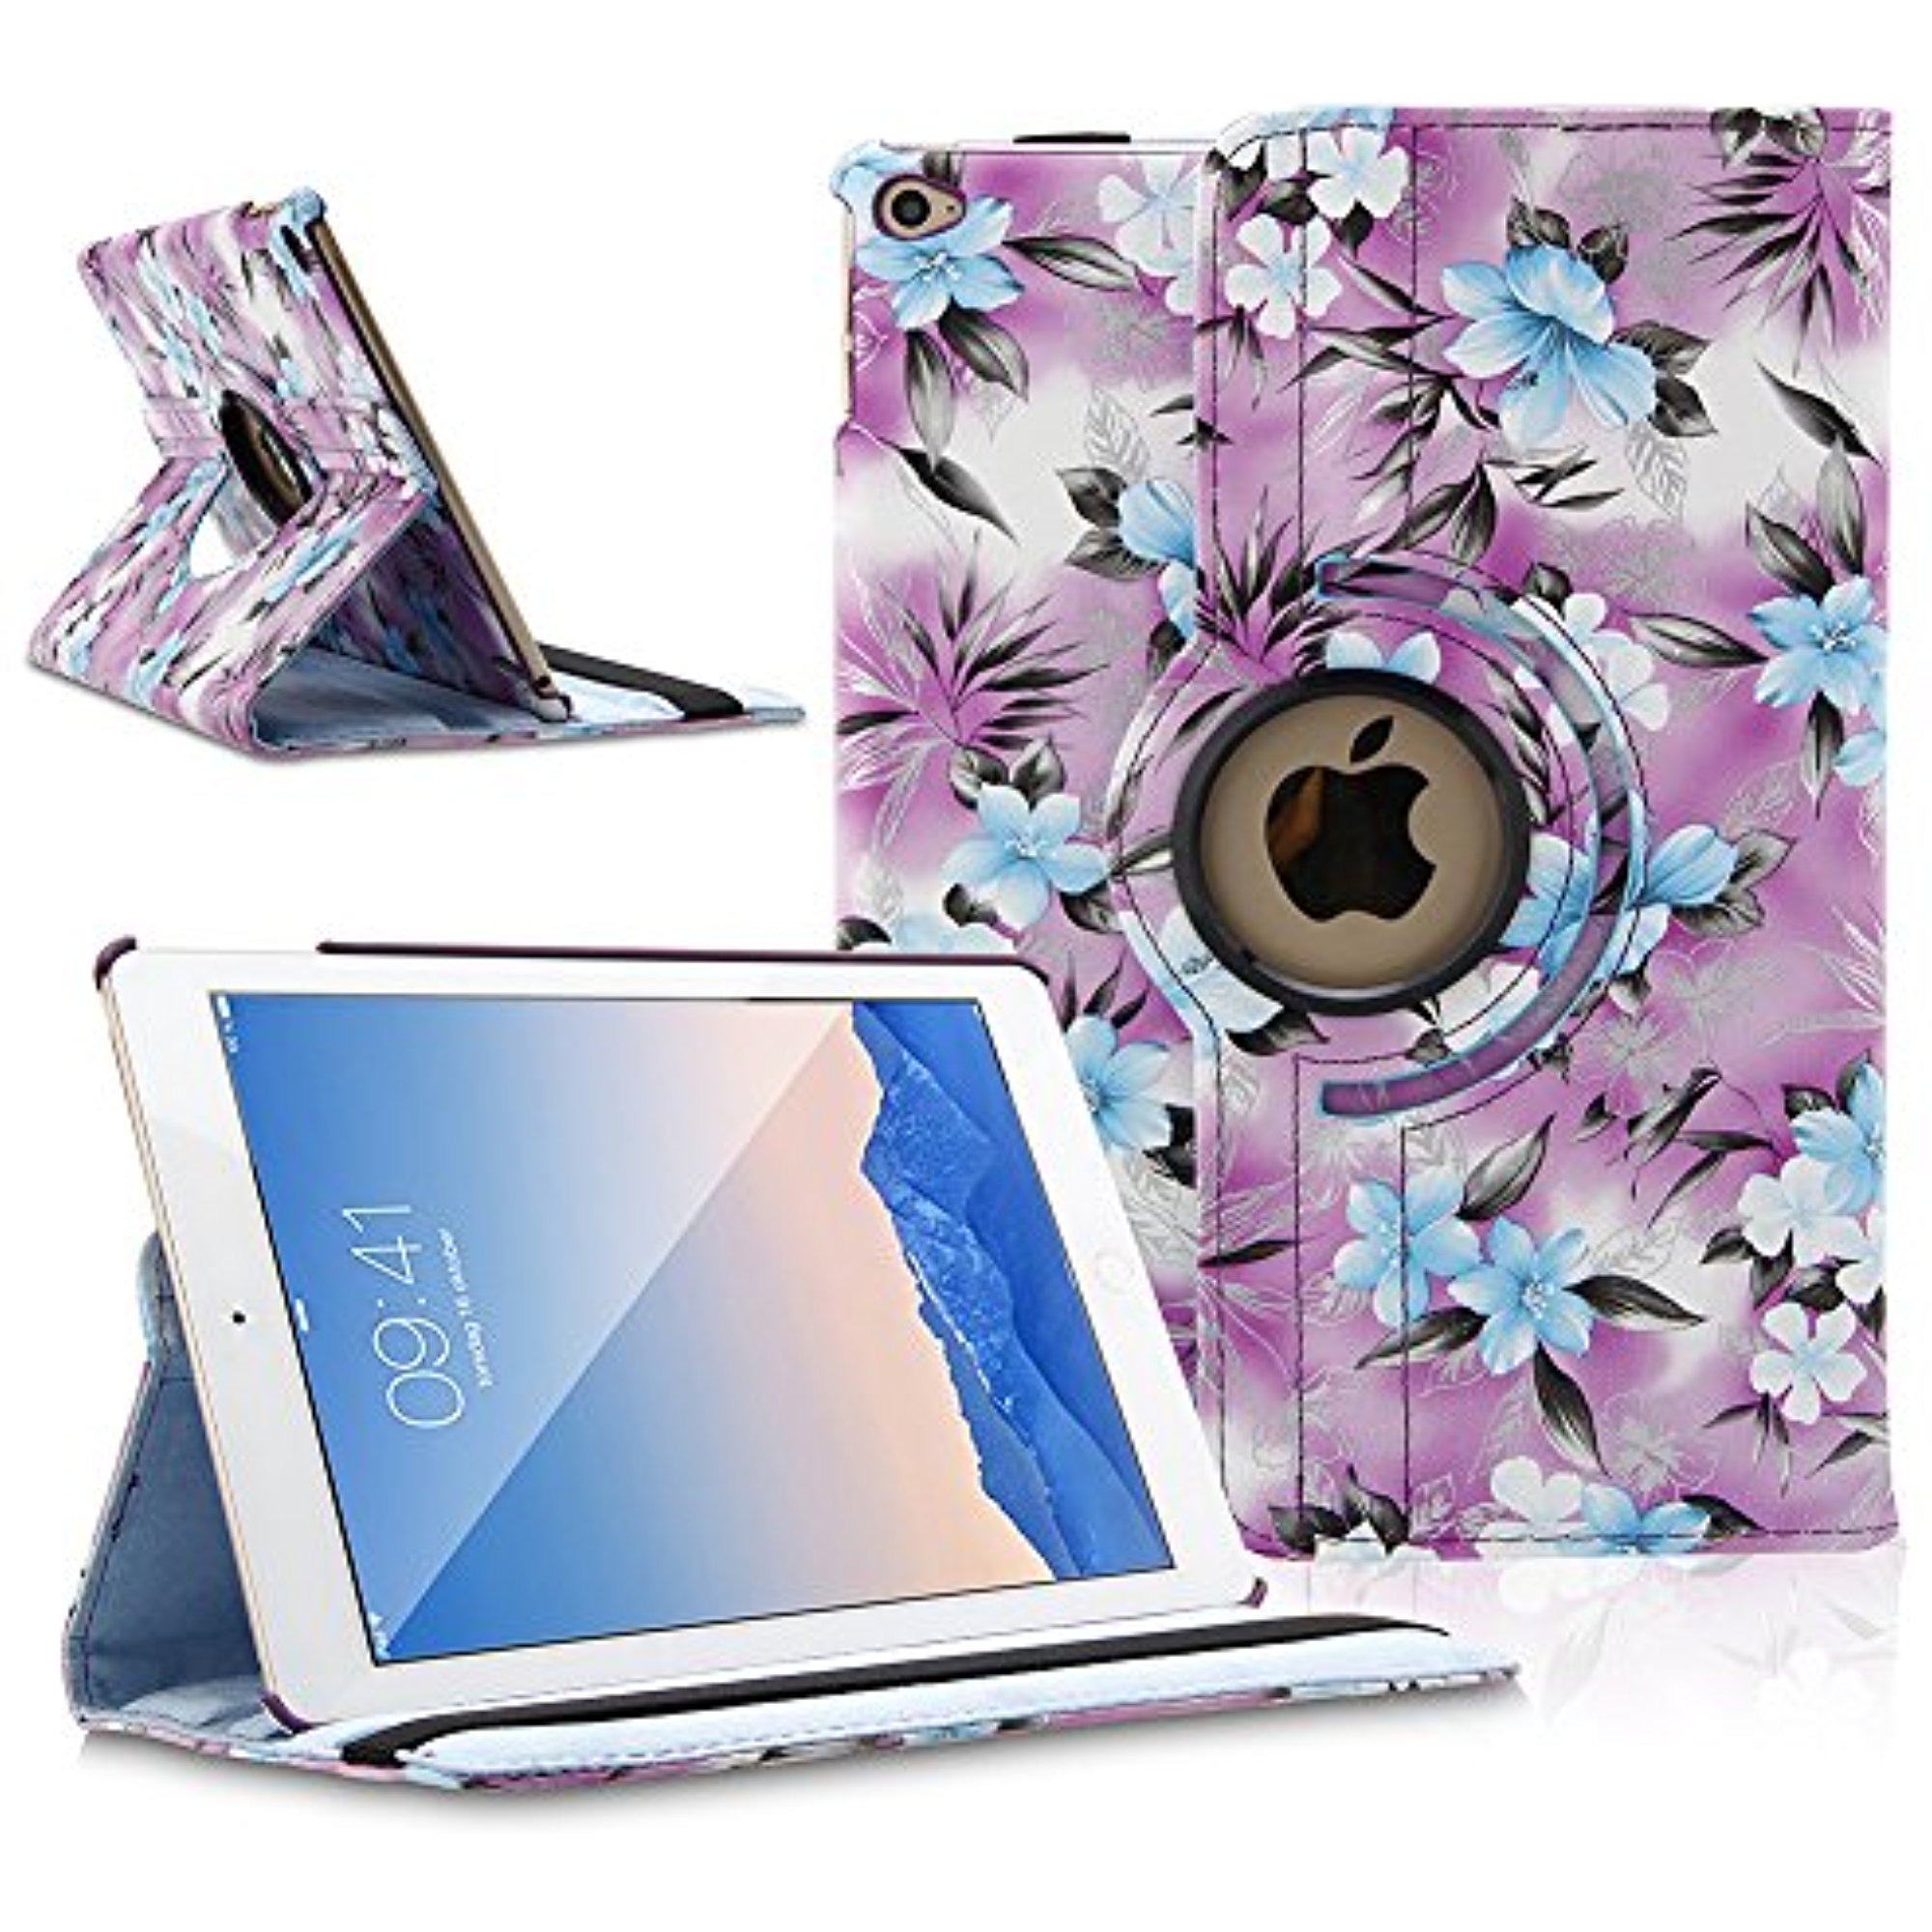 TOPCHANCES 360 Degrees Rotating PU Leather Case Smart Cover Stand for iPad mini mini2 mini3 with Stylus Pen Support Auto Wake & Sleep Function (Purple Camellia)